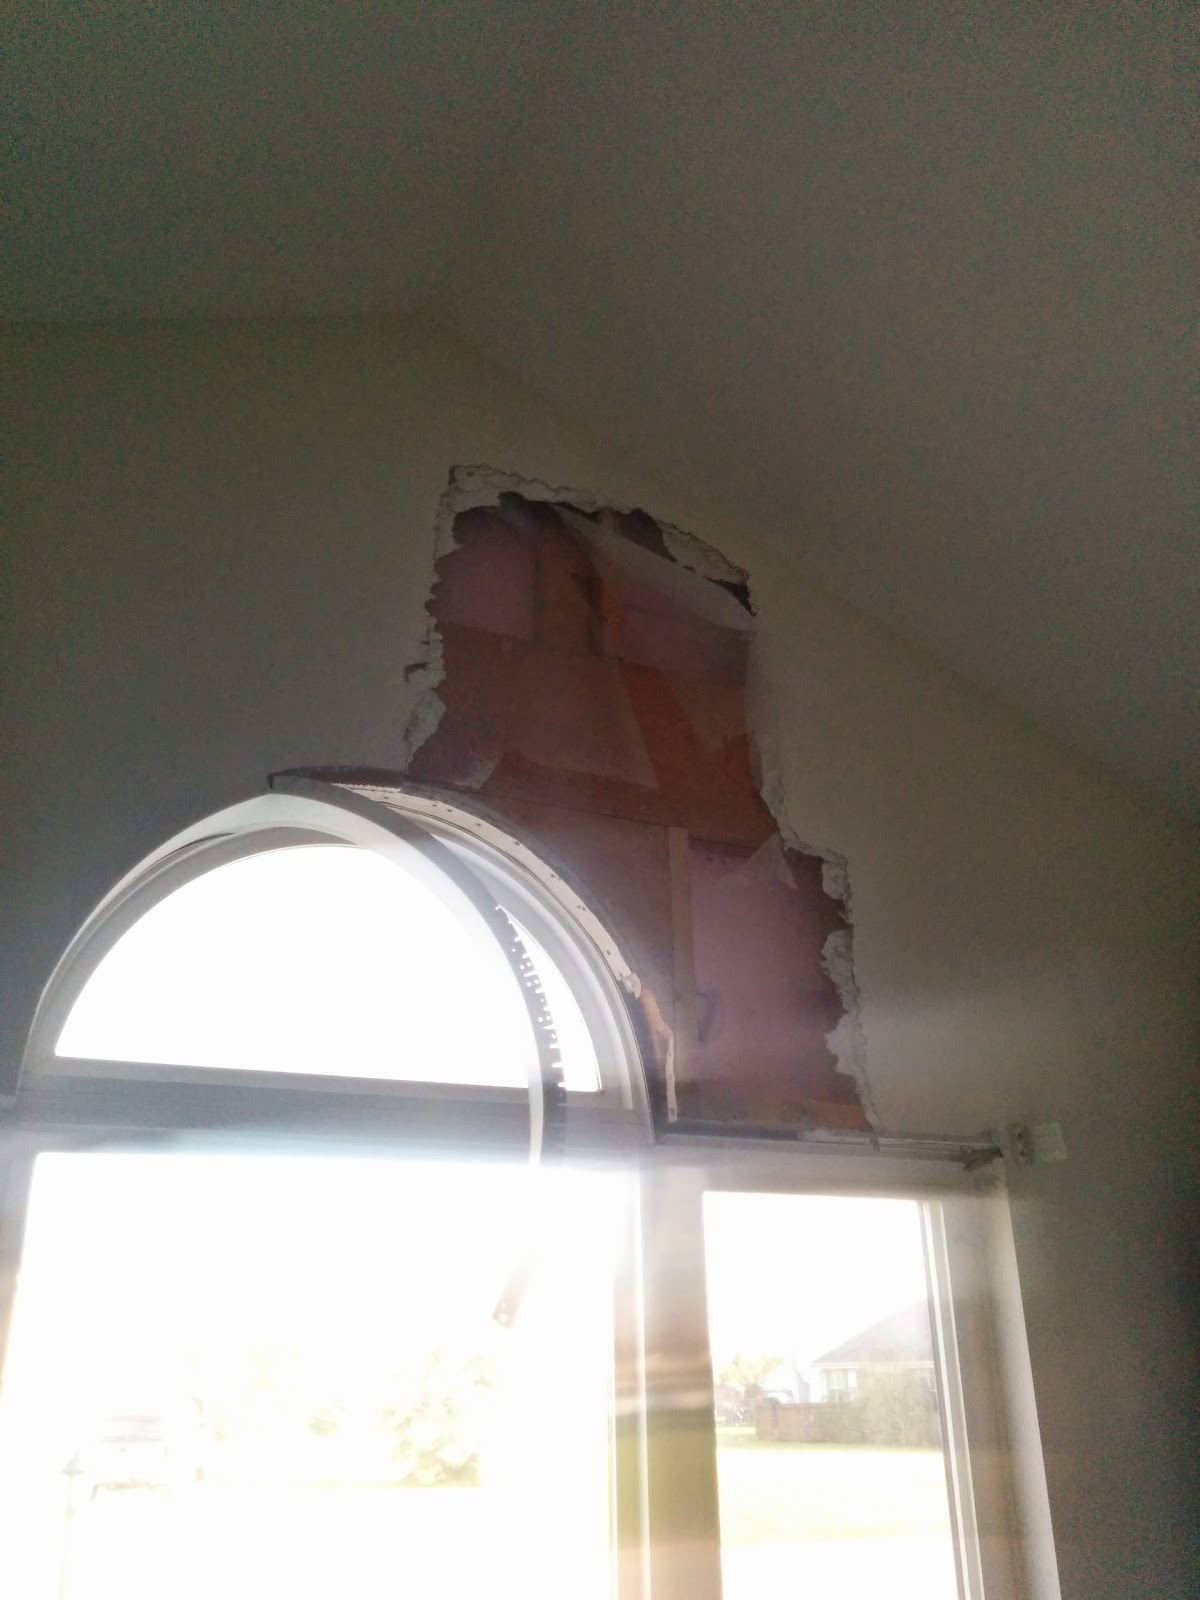 …And then I had a hole in my wall….